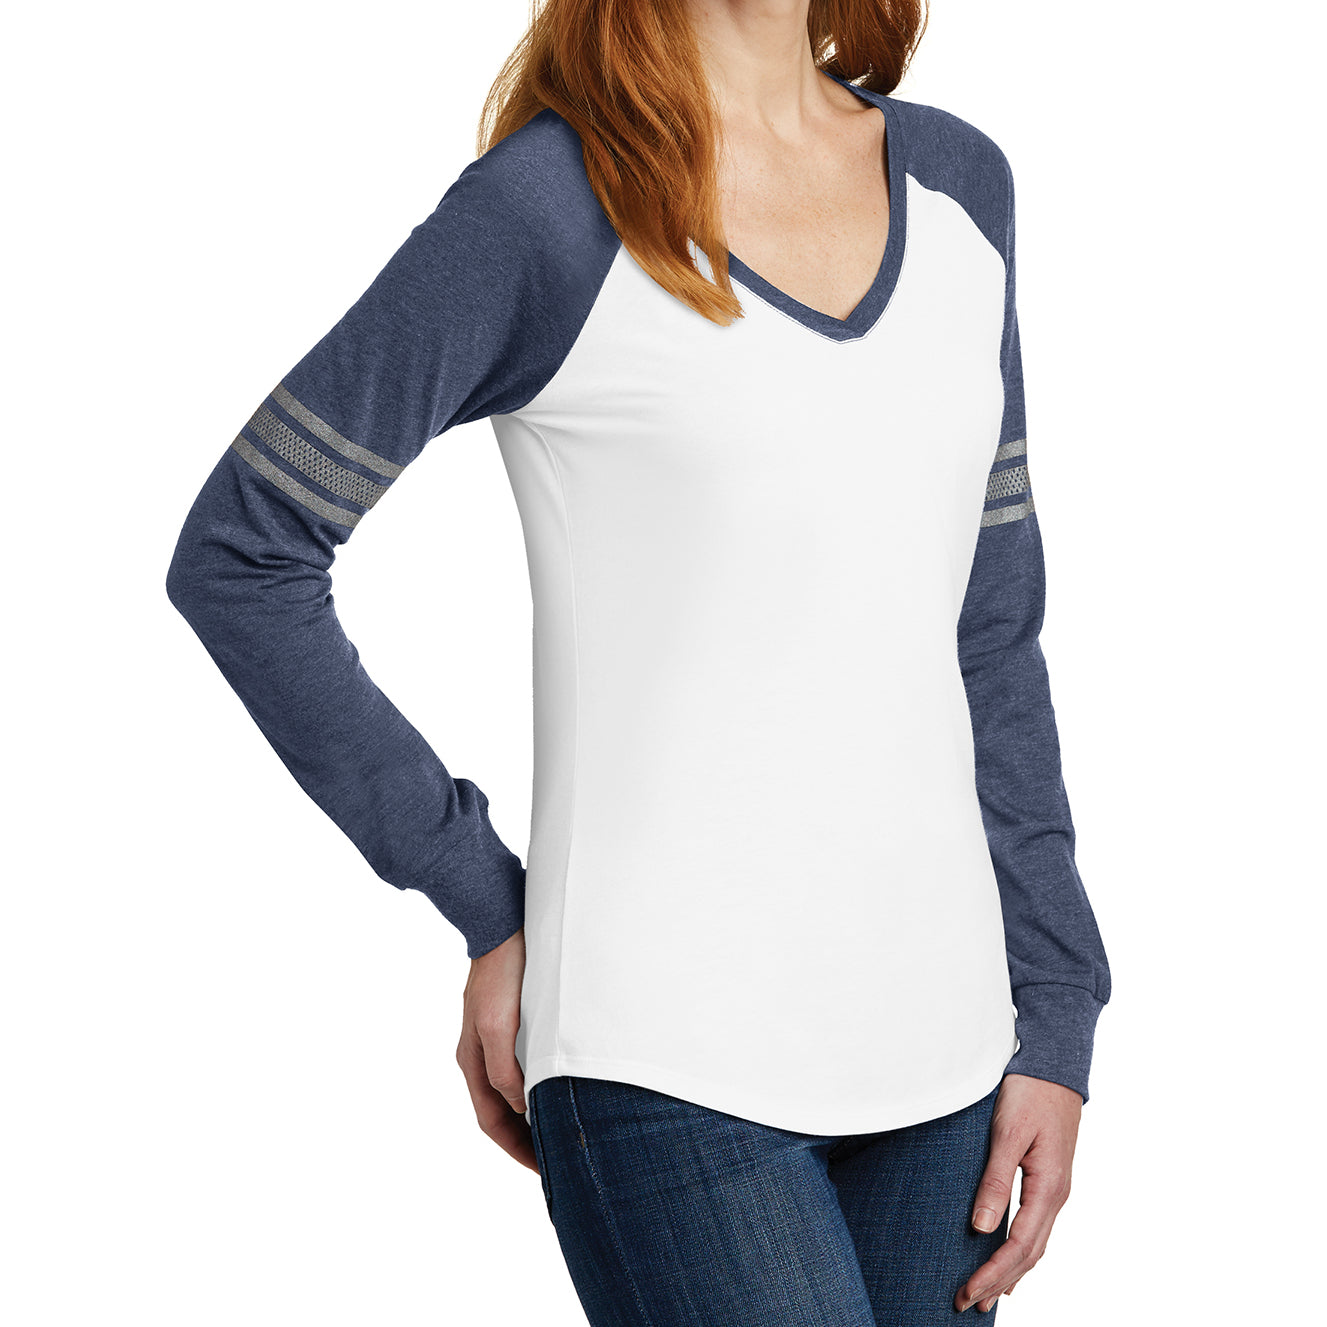 Women's Game Long Sleeve V-Neck Tee - White/ Heathered Navy/ Silver - Side